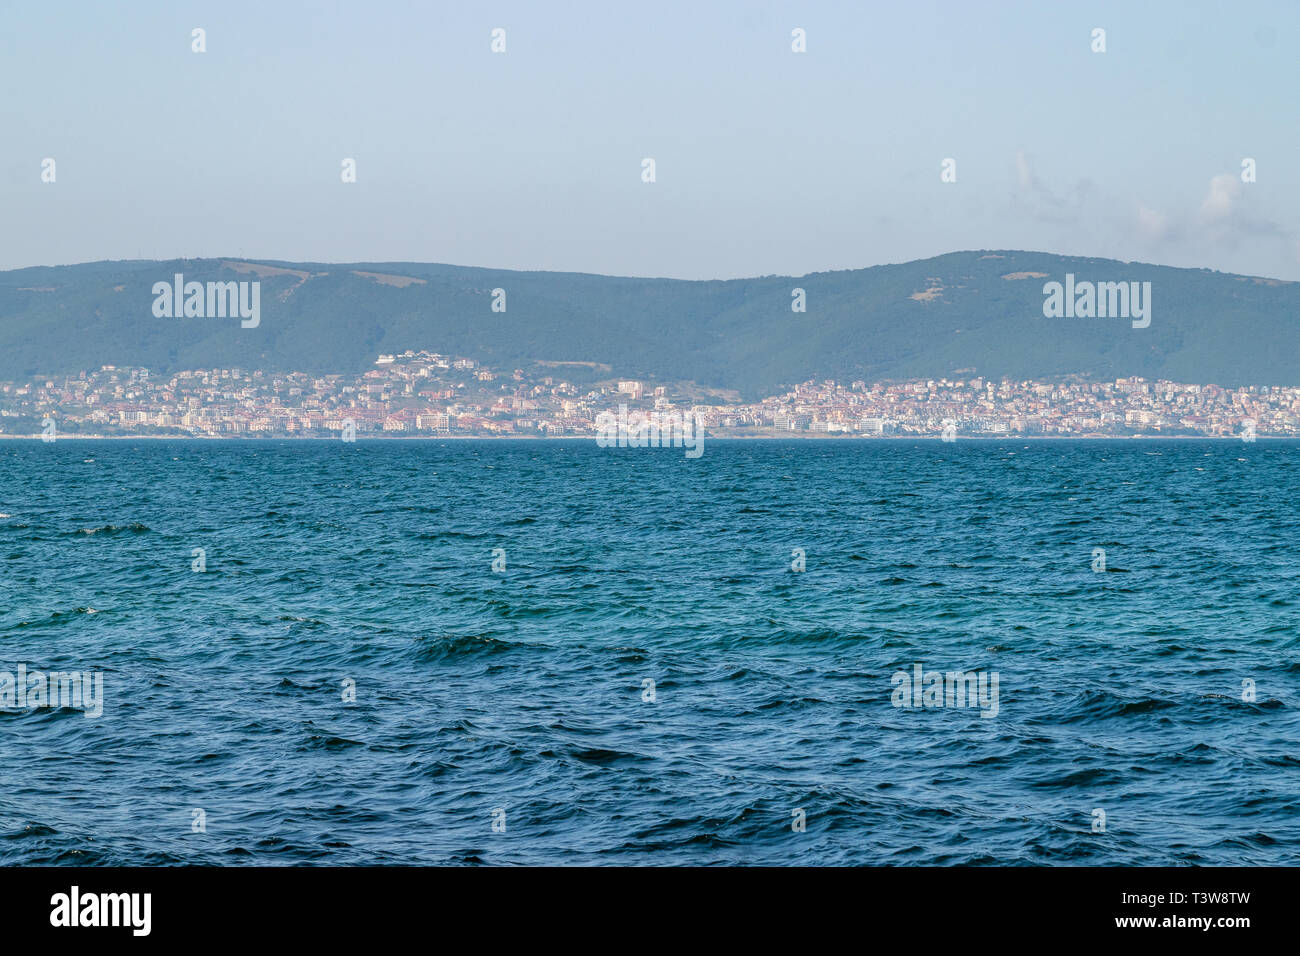 View to the Sunny beach resort from Nessebar ancient city, bought one of the major seasides resorts on the Bulgarian Black Sea Coast. - Stock Image